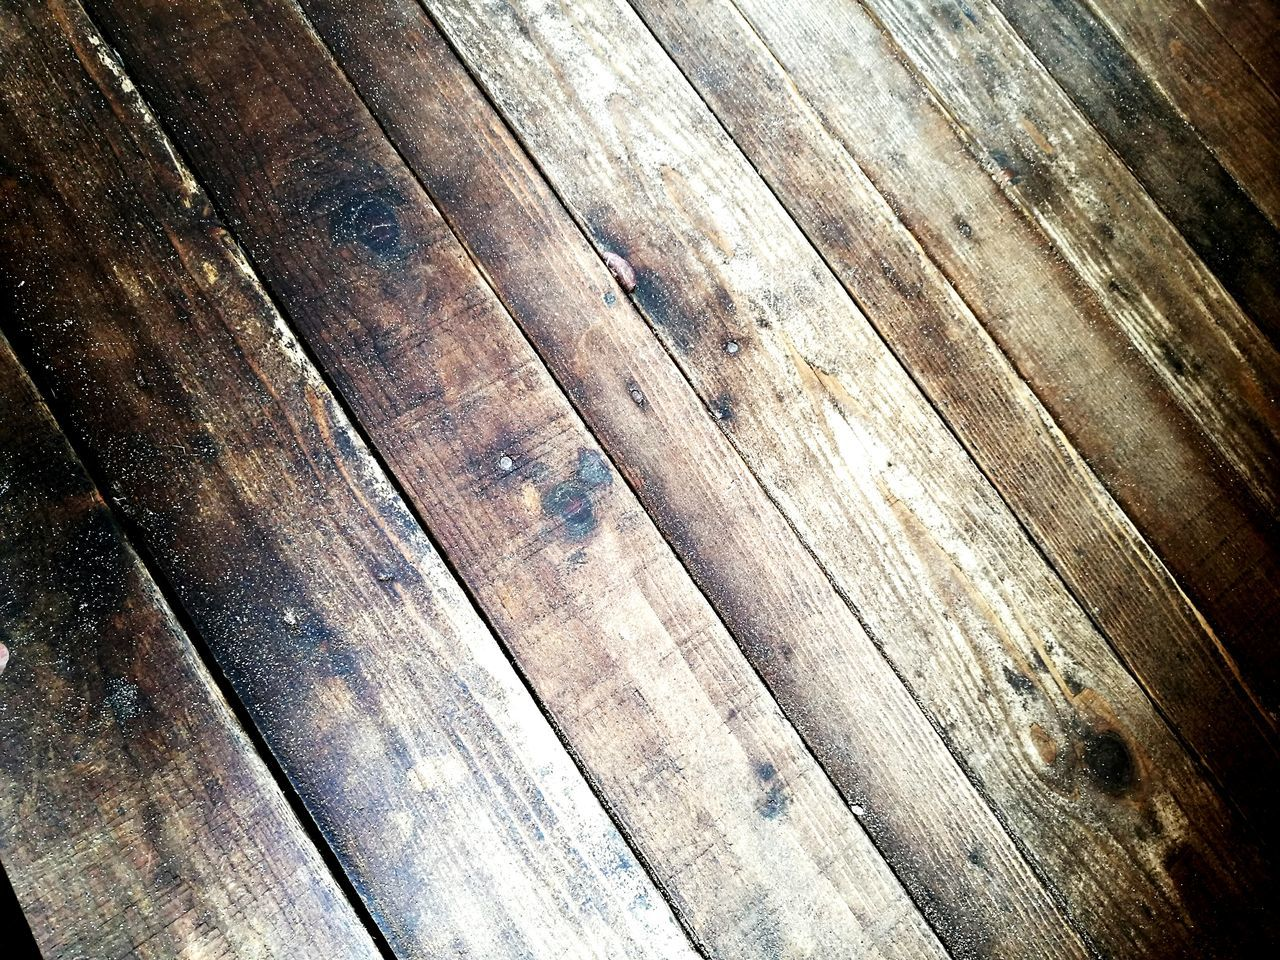 wood - material, backgrounds, wood grain, pattern, hardwood floor, full frame, brown, textured, no people, table, close-up, hardwood, nature, day, indoors